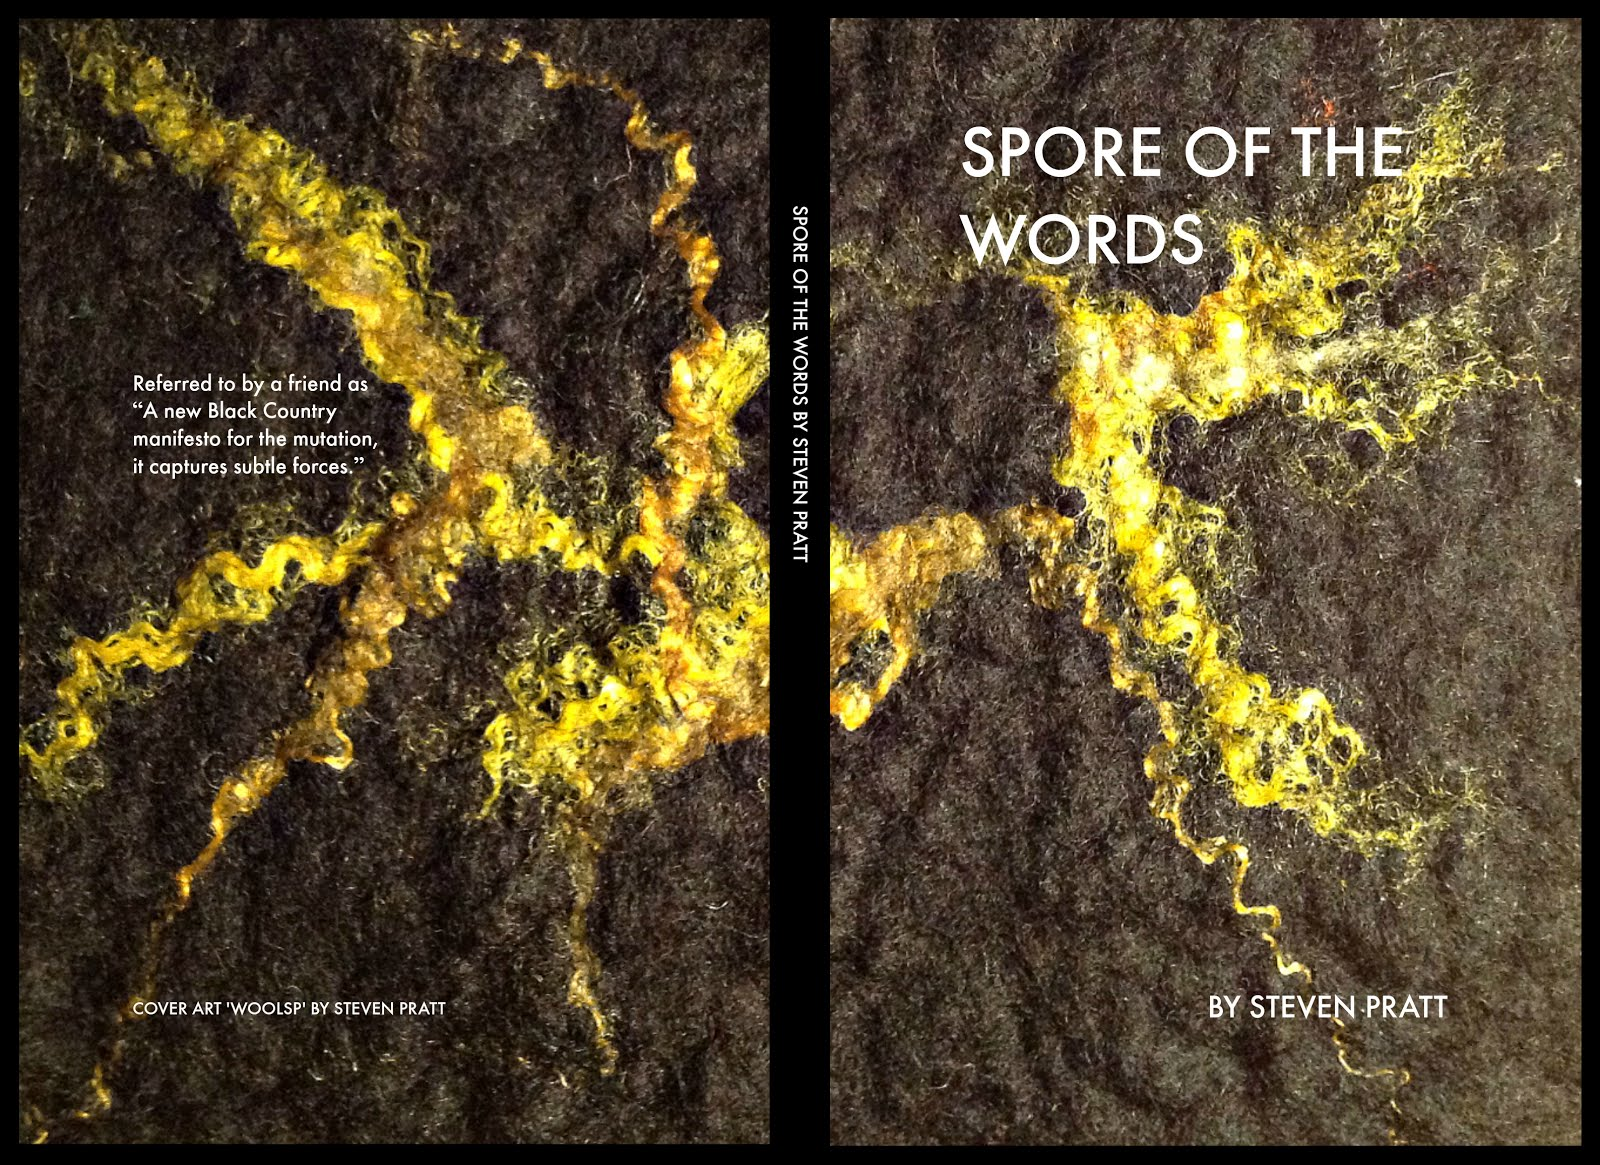 The spore of the words